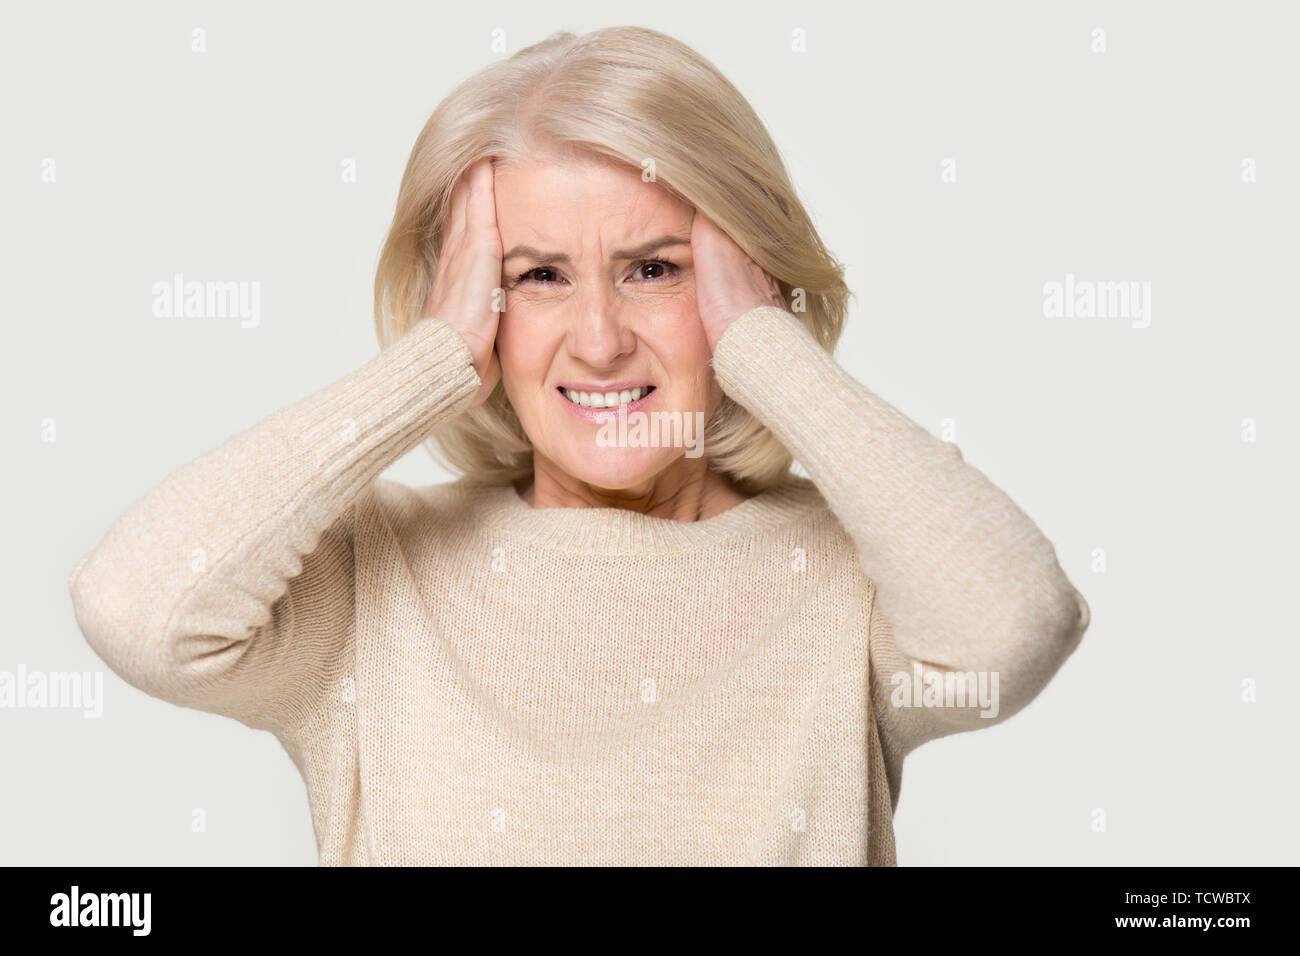 Mature woman holding head in hands feels unhealthy studio shot - Stock Image